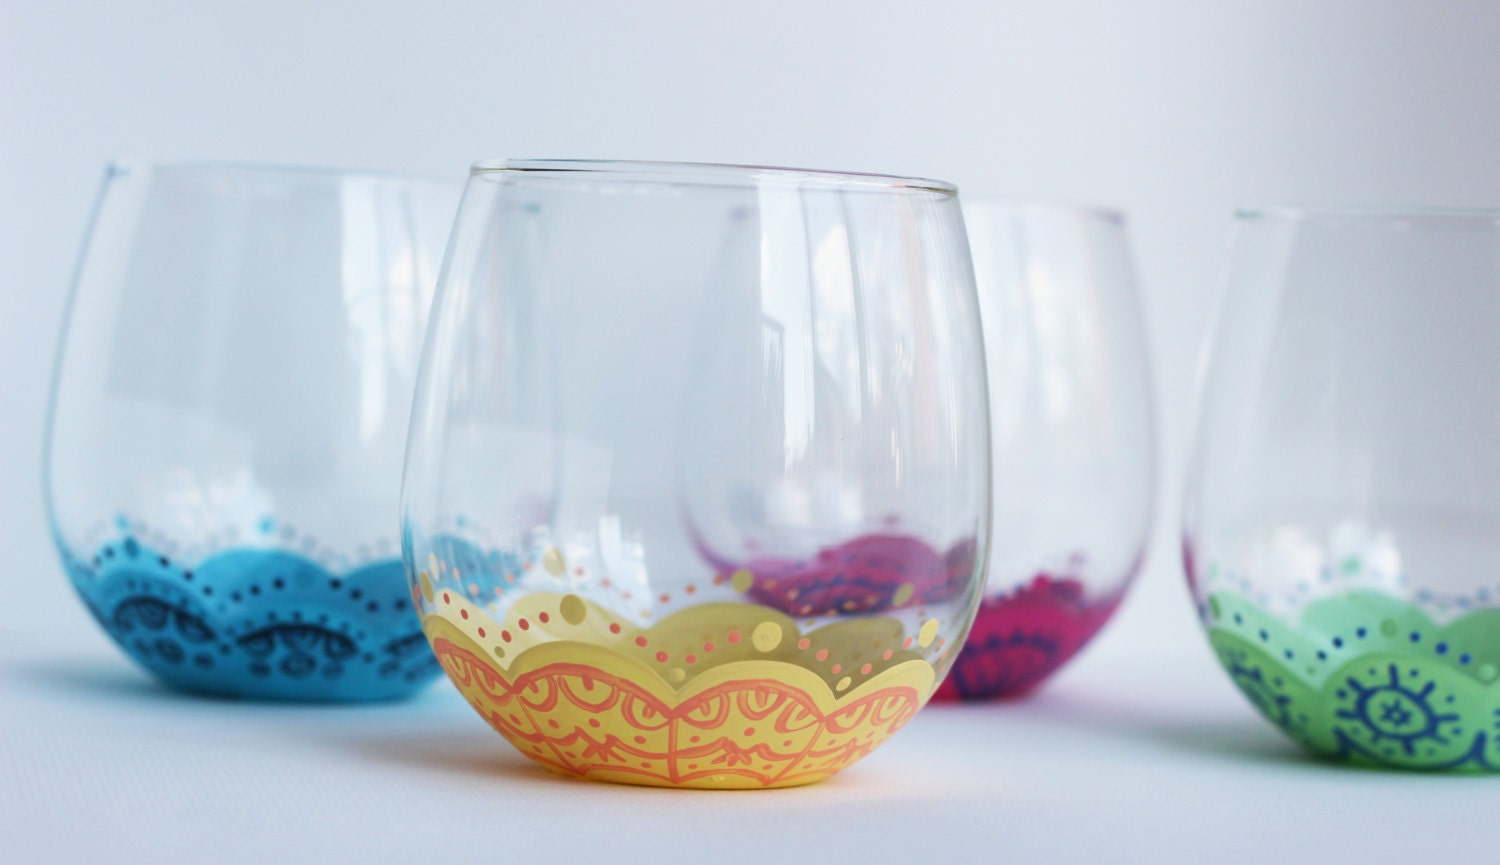 Fiesta Set Of 4 Colorful And Unique Stemless Wine Glasses